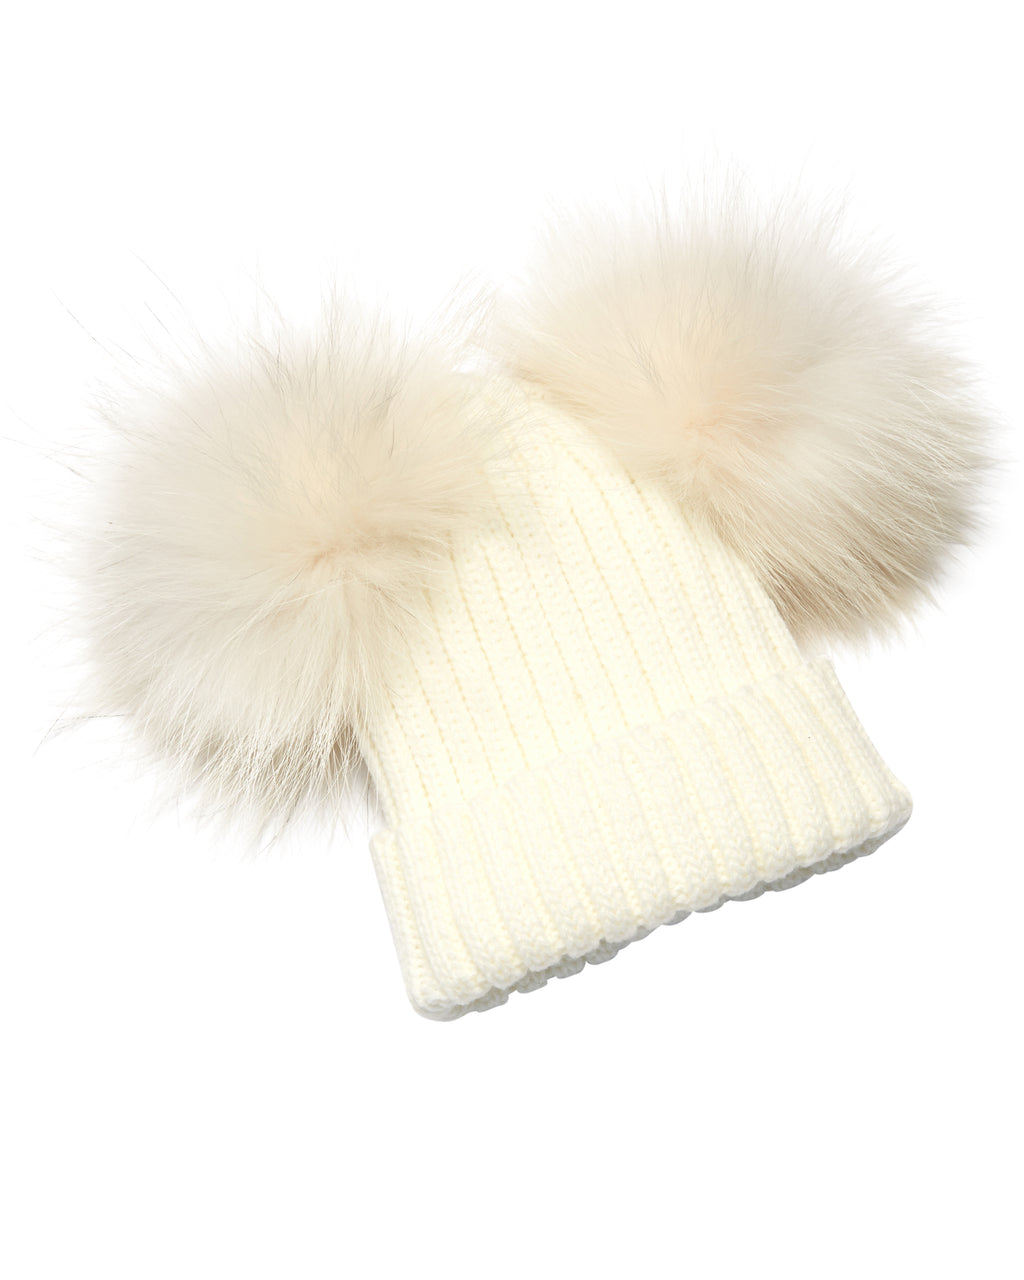 Kid's White Raccoon Fur Double Pom Pom Hat - White - Pic Pop